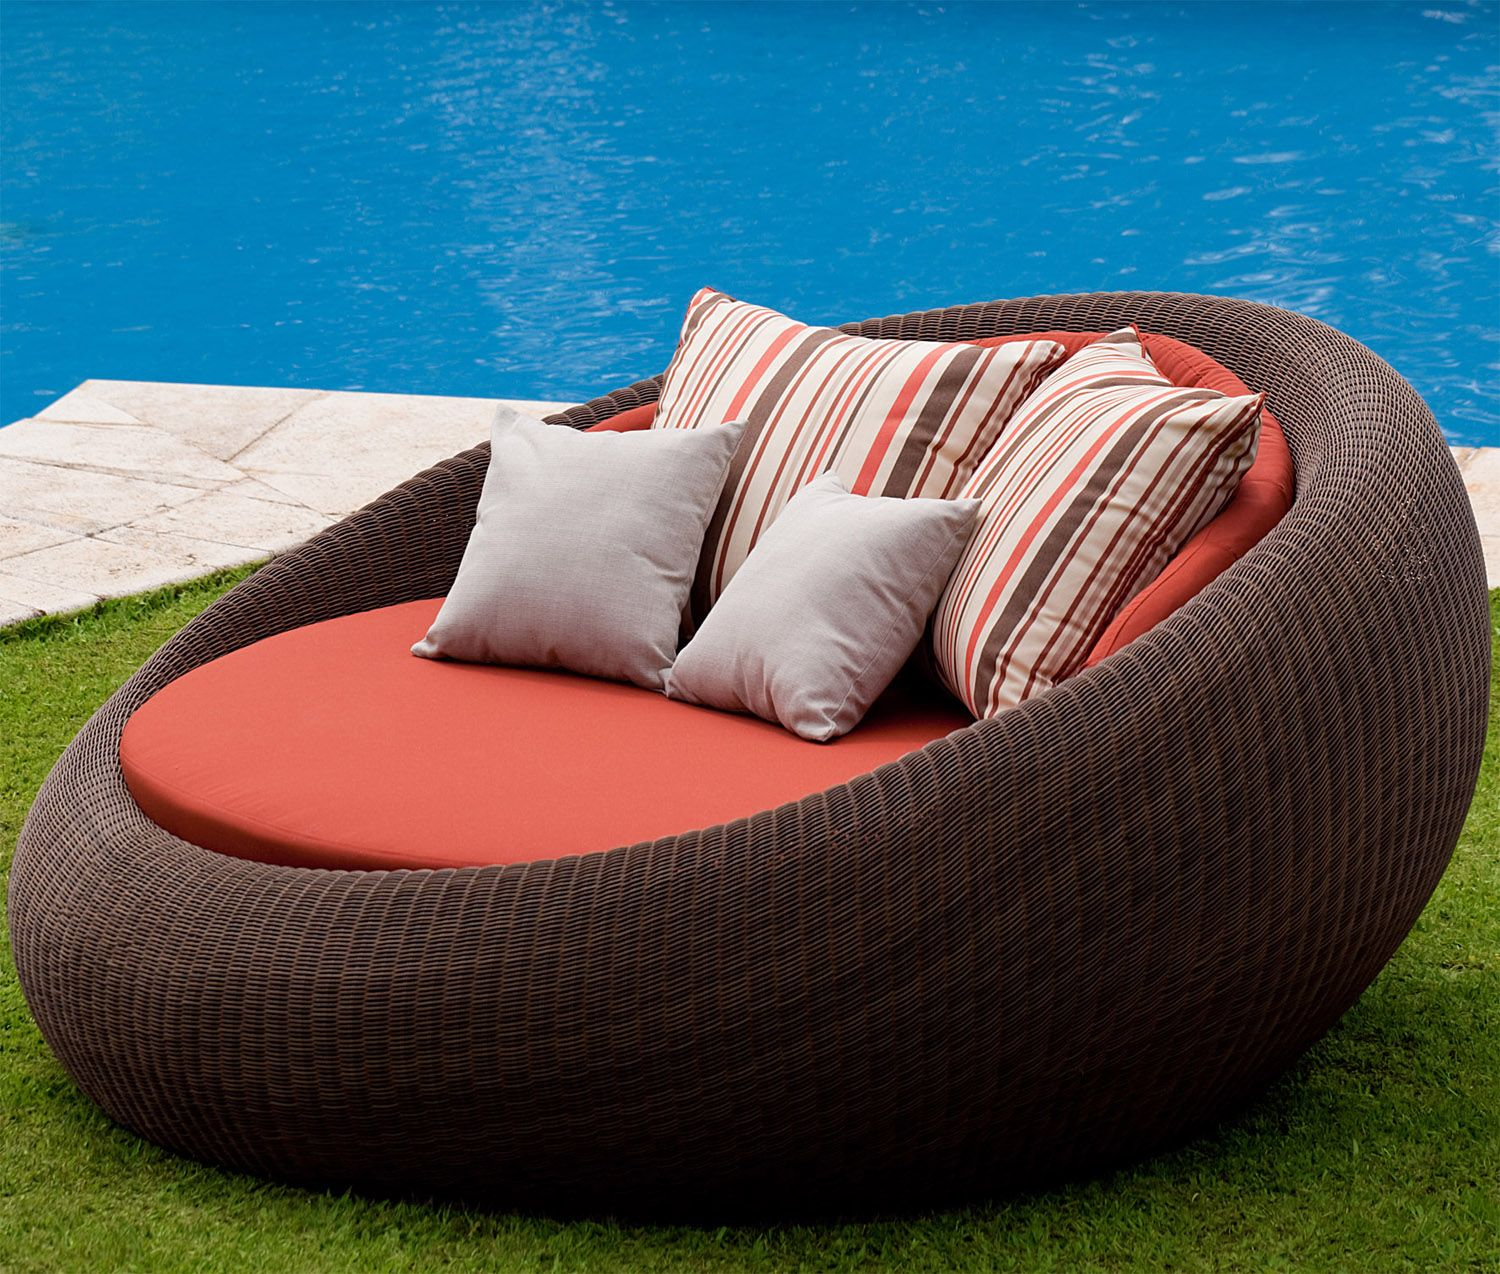 Diy Round Patio Daybed